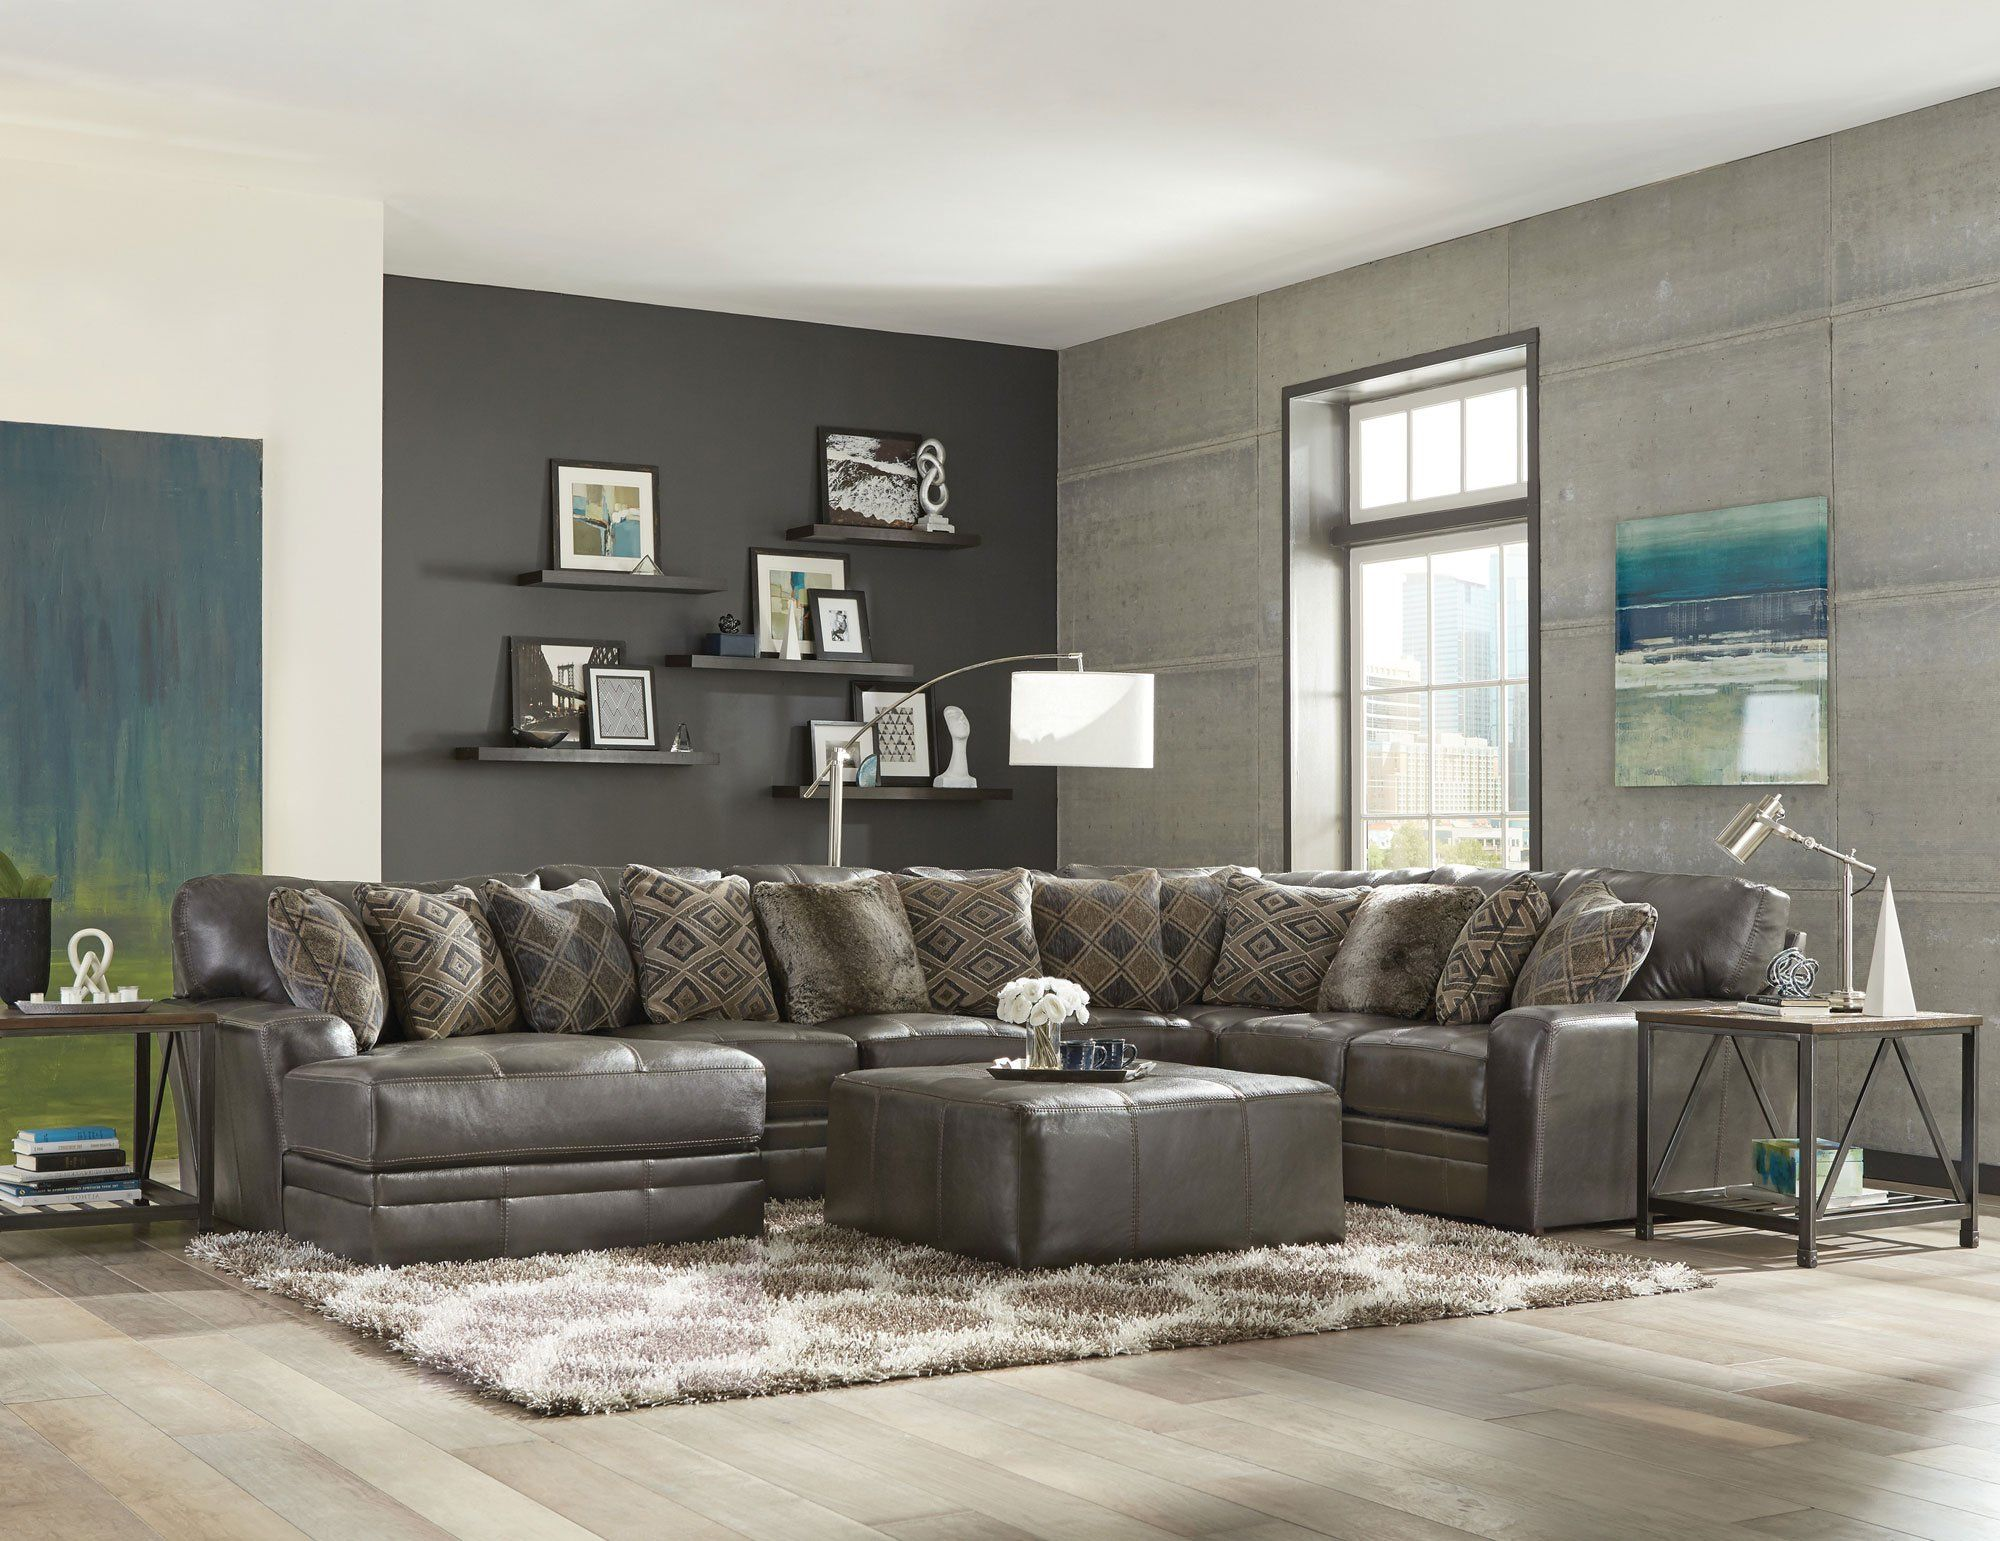 Casual Classic Steel Gray 5 Piece Sectional Sofa Denali Rc Willey Furniture Store Jackson Furniture 3 Piece Sectional Sofa Sectional Sofa #rc #willey #living #room #set